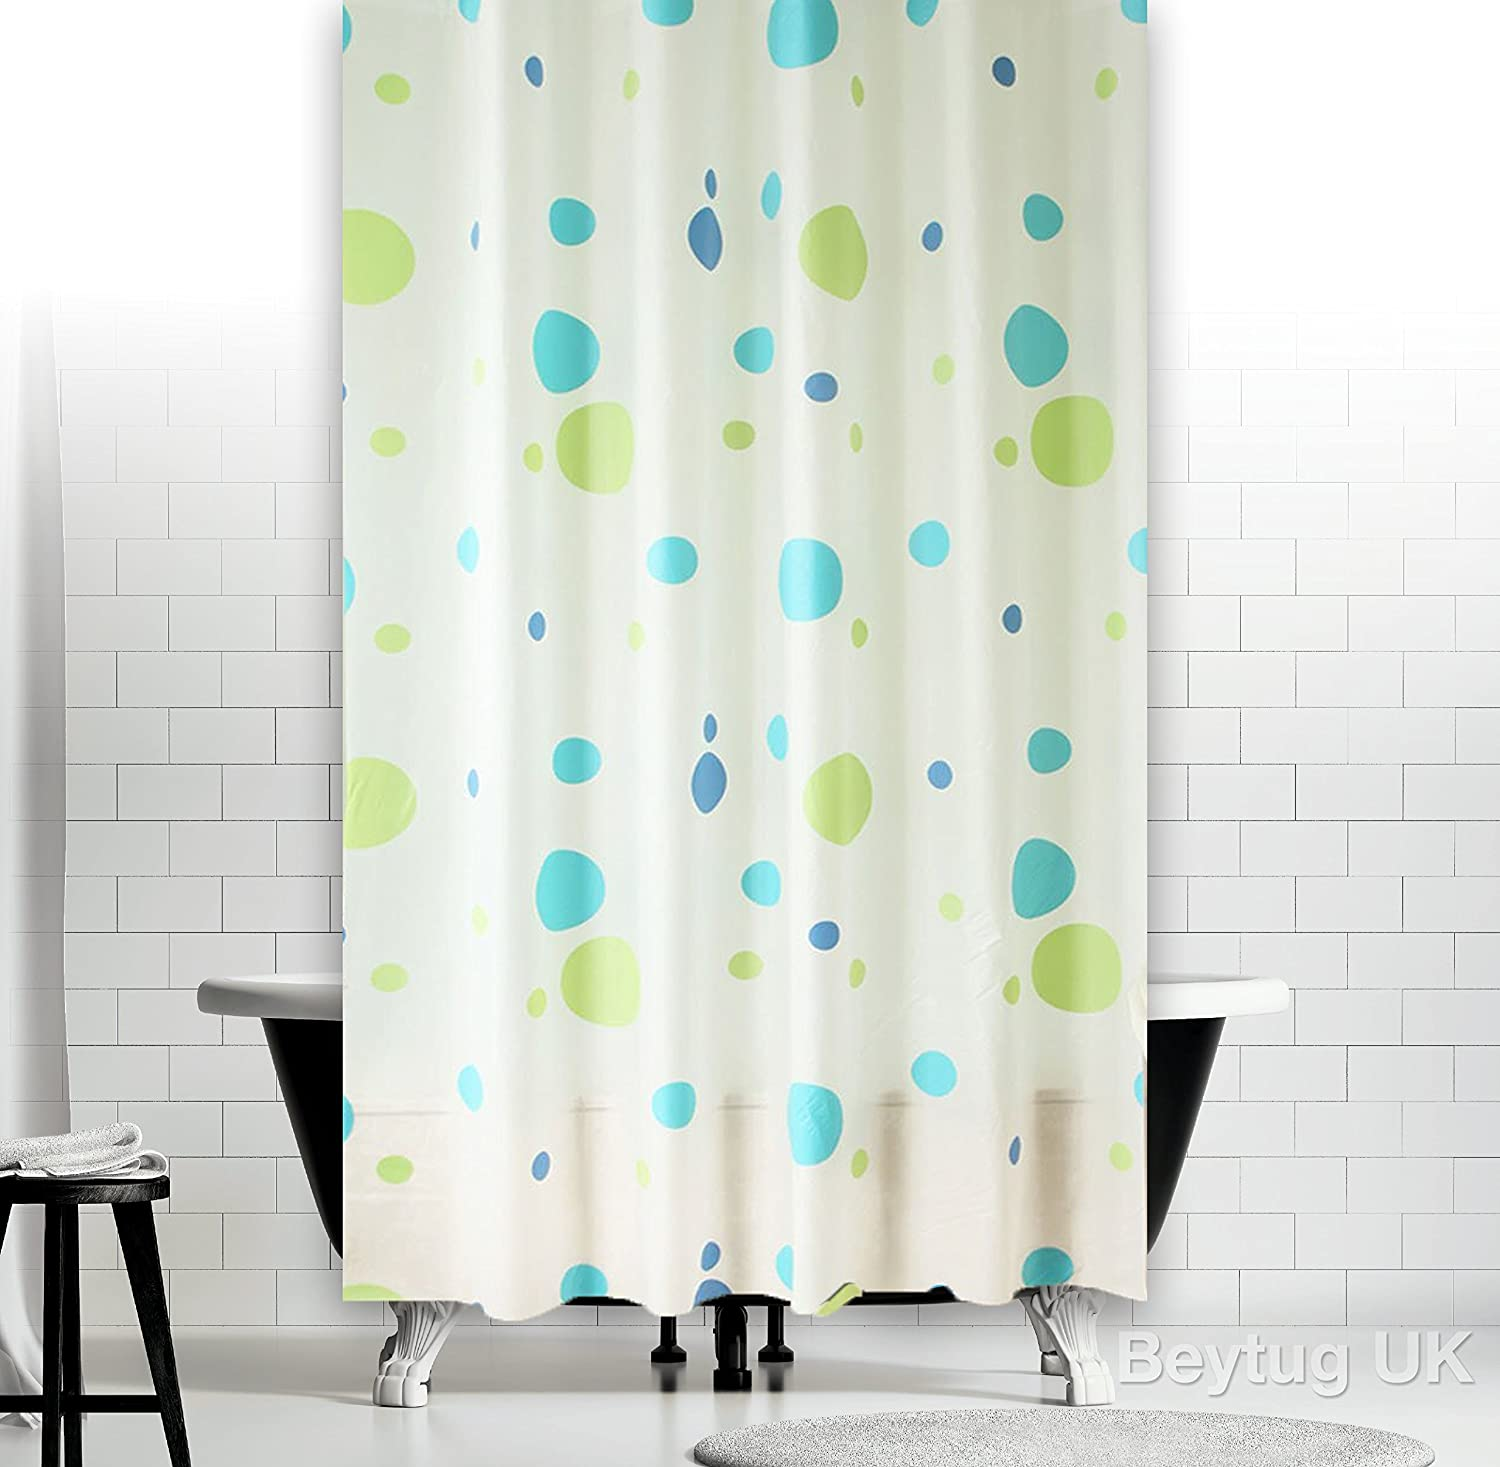 New Funky Bathroom Shower Curtain Extra Long with Rings 180 x 200 ...